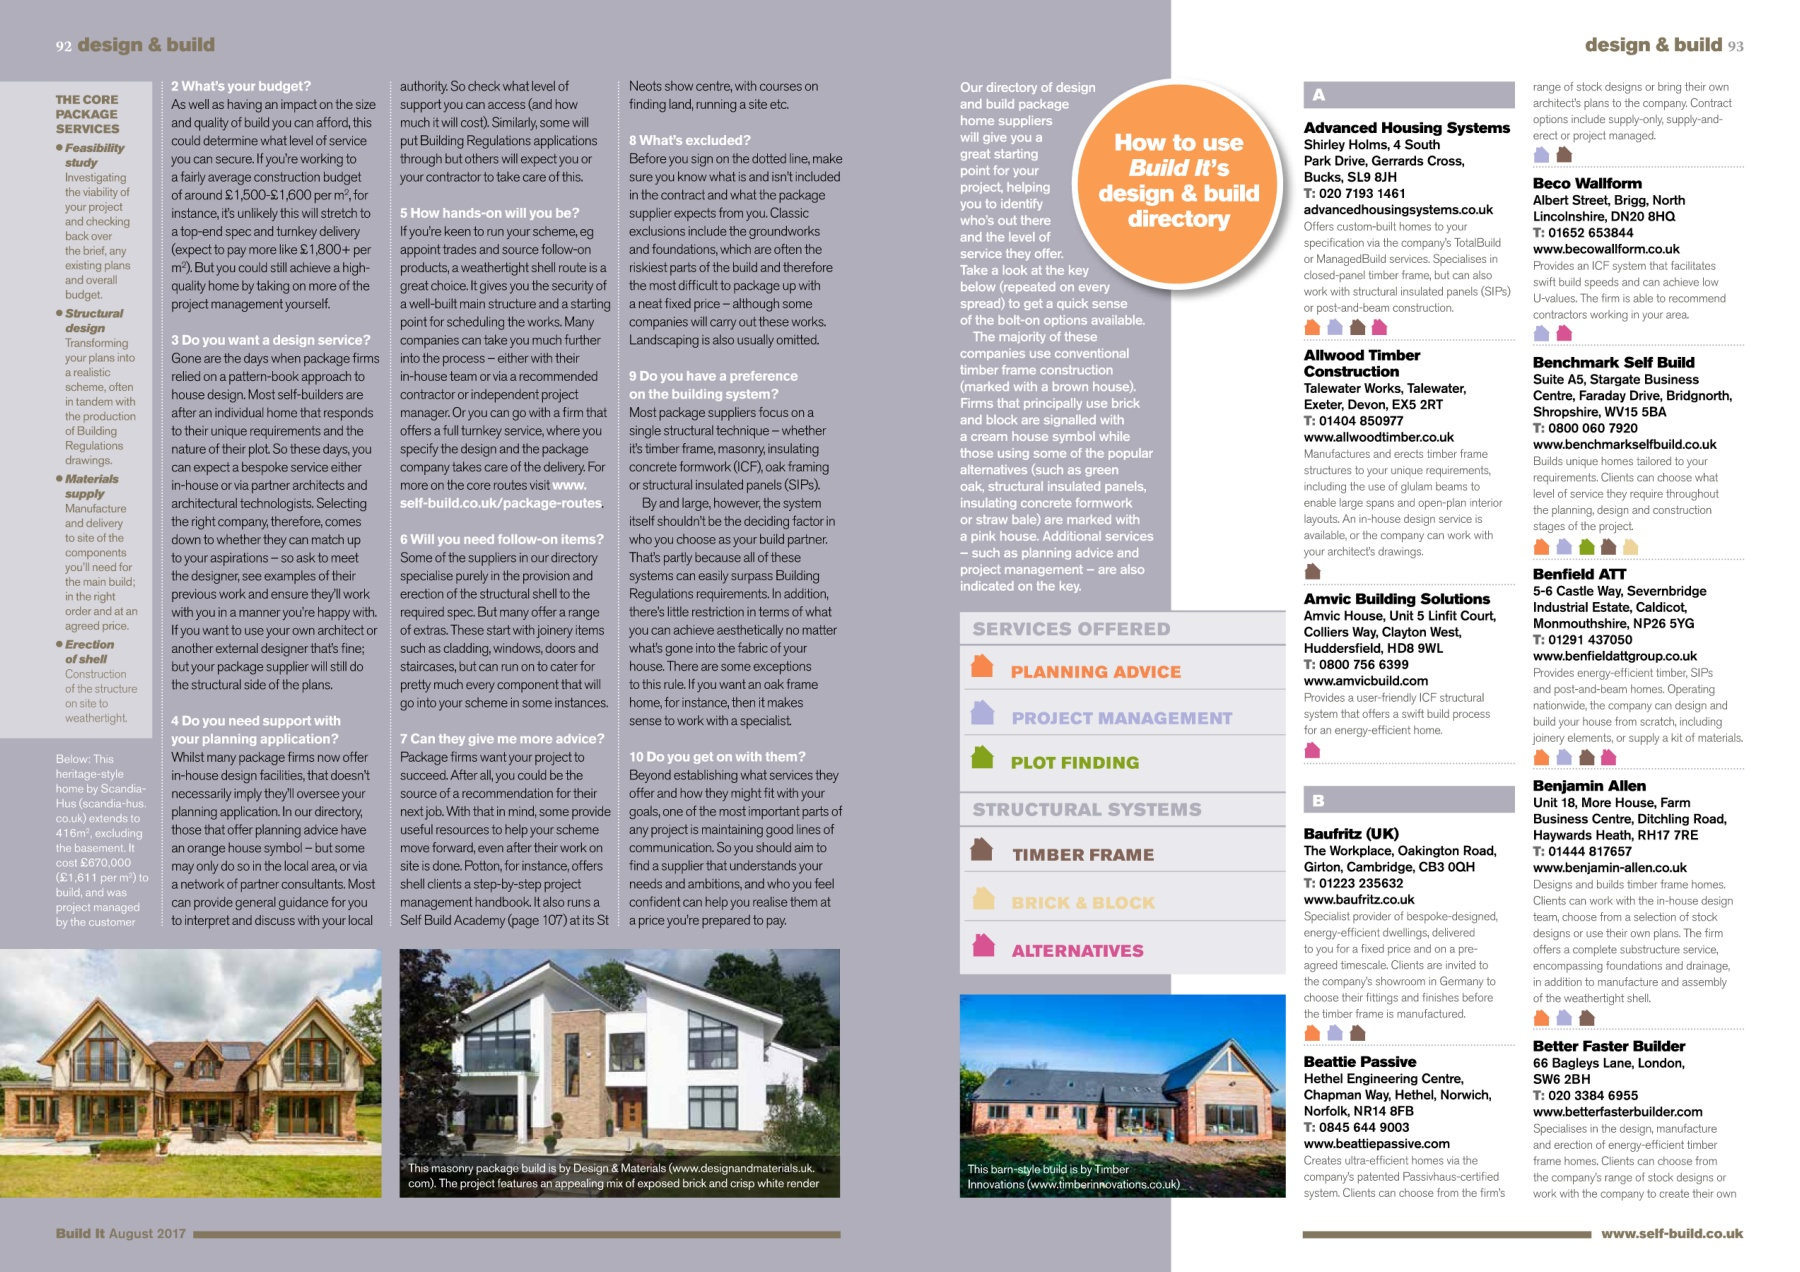 Design & Build Directory_BI 0817 Pages 1 - 9 - Text Version | AnyFlip